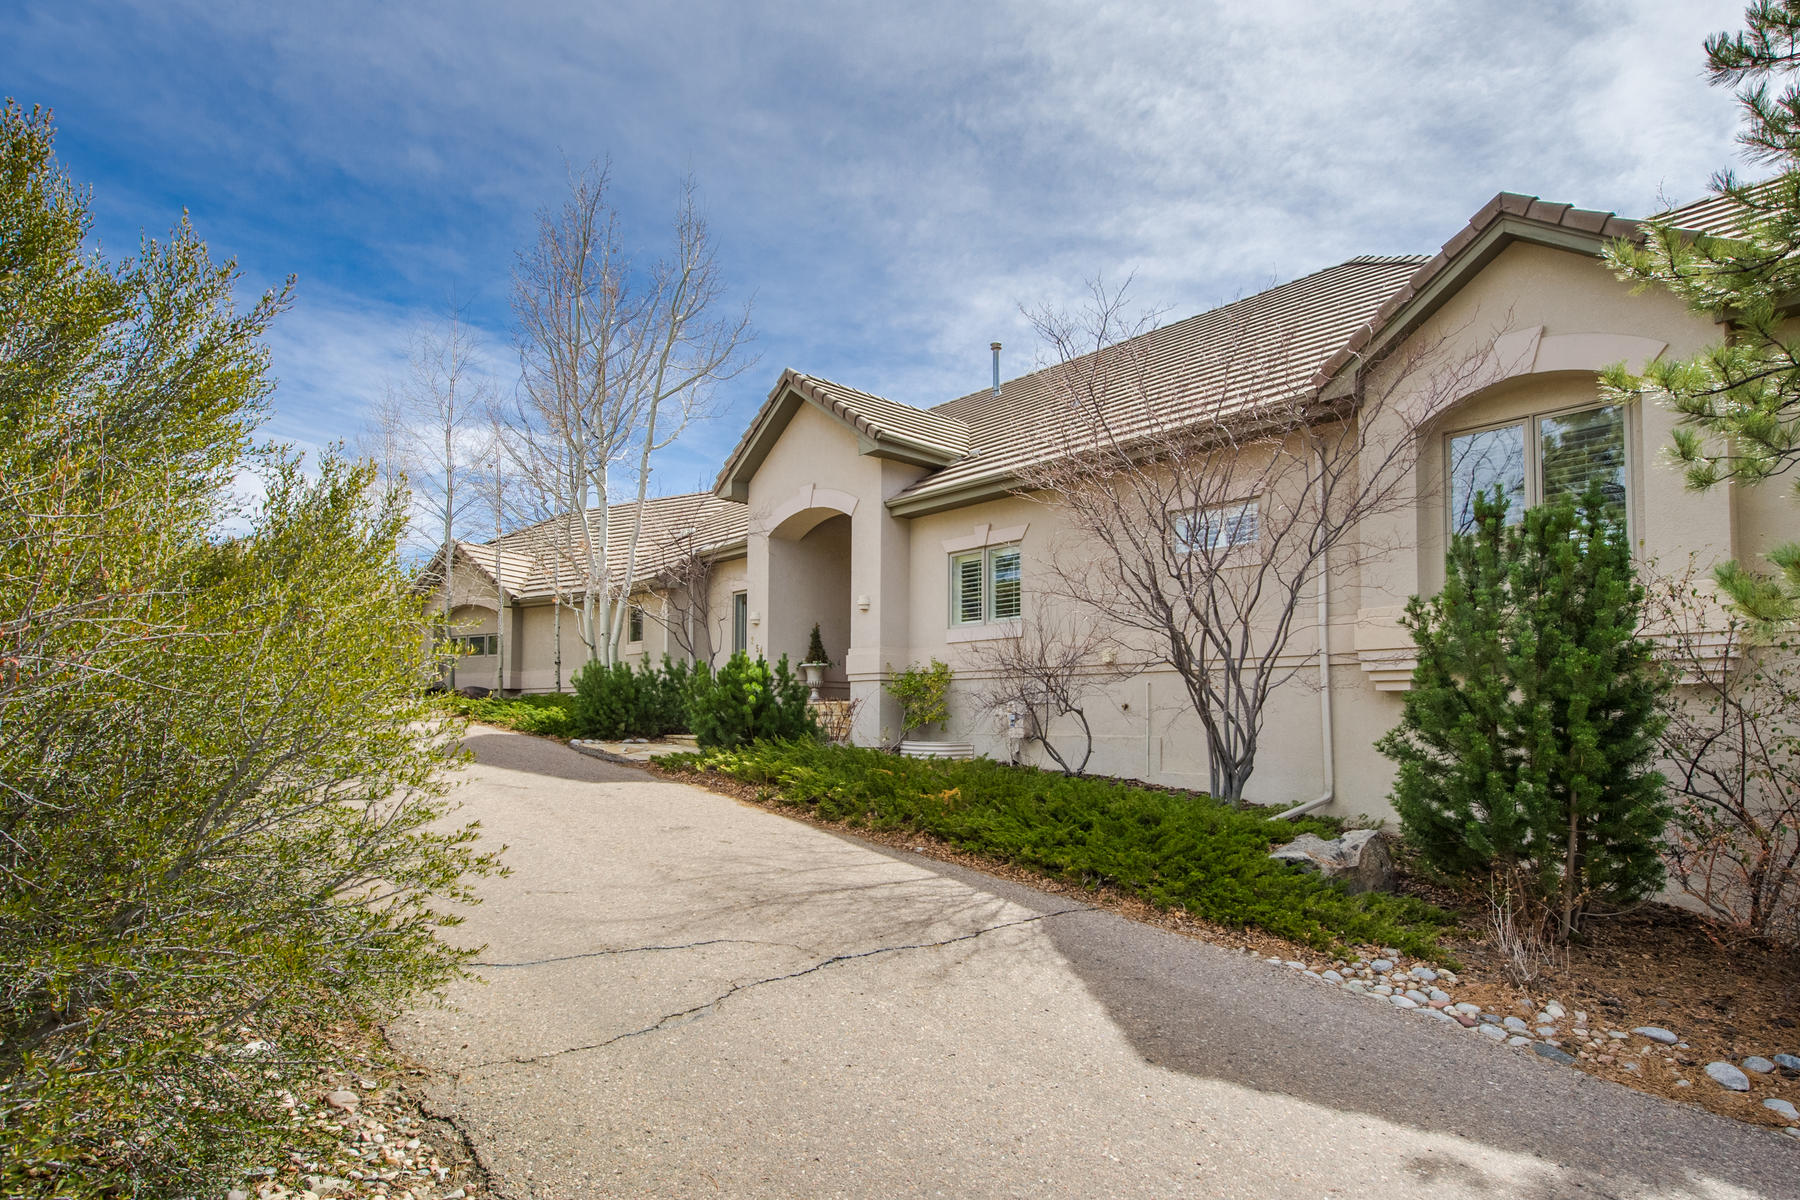 Single Family Home for Active at 254 Lead Queen Dr Castle Rock, Colorado 80108 United States